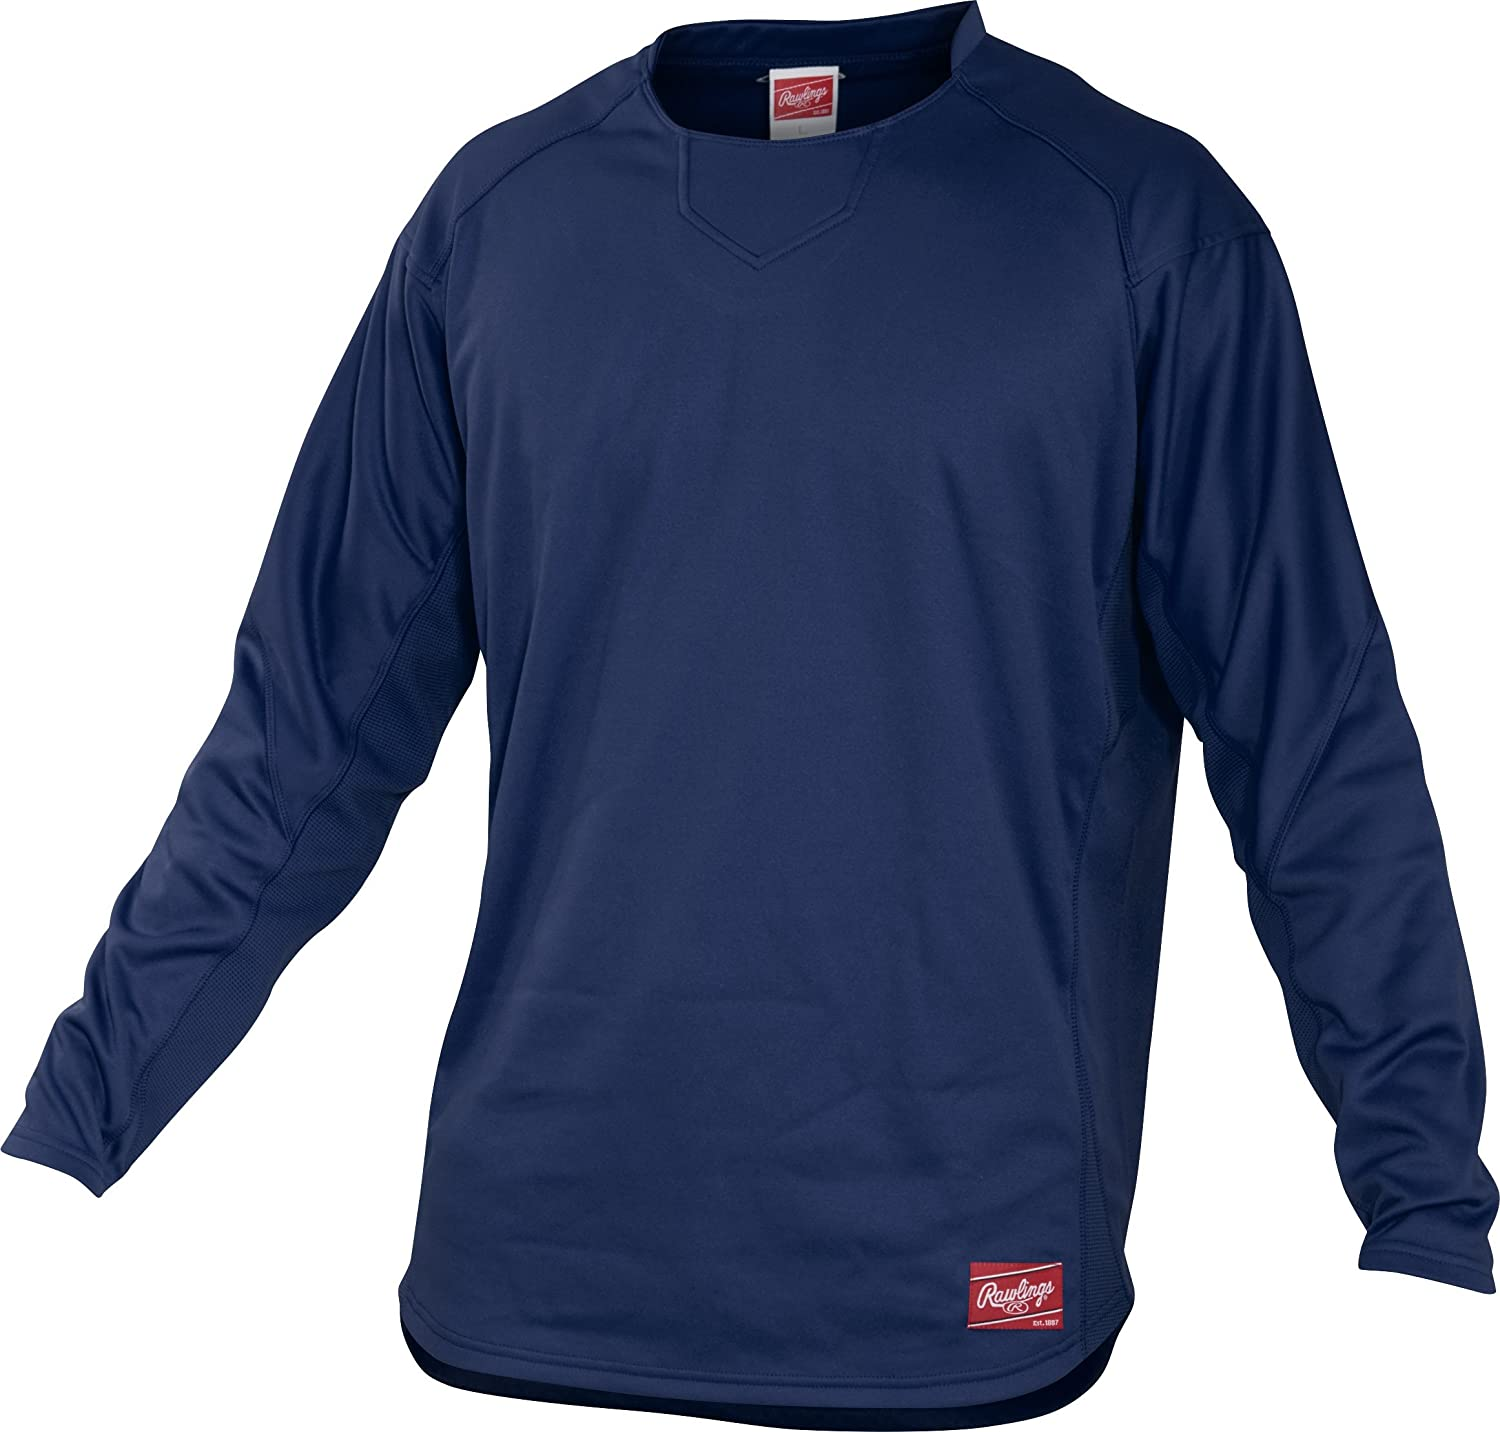 Rawlings Adult Complete Free Shipping Bombing free shipping Dugout Fleece Pullover